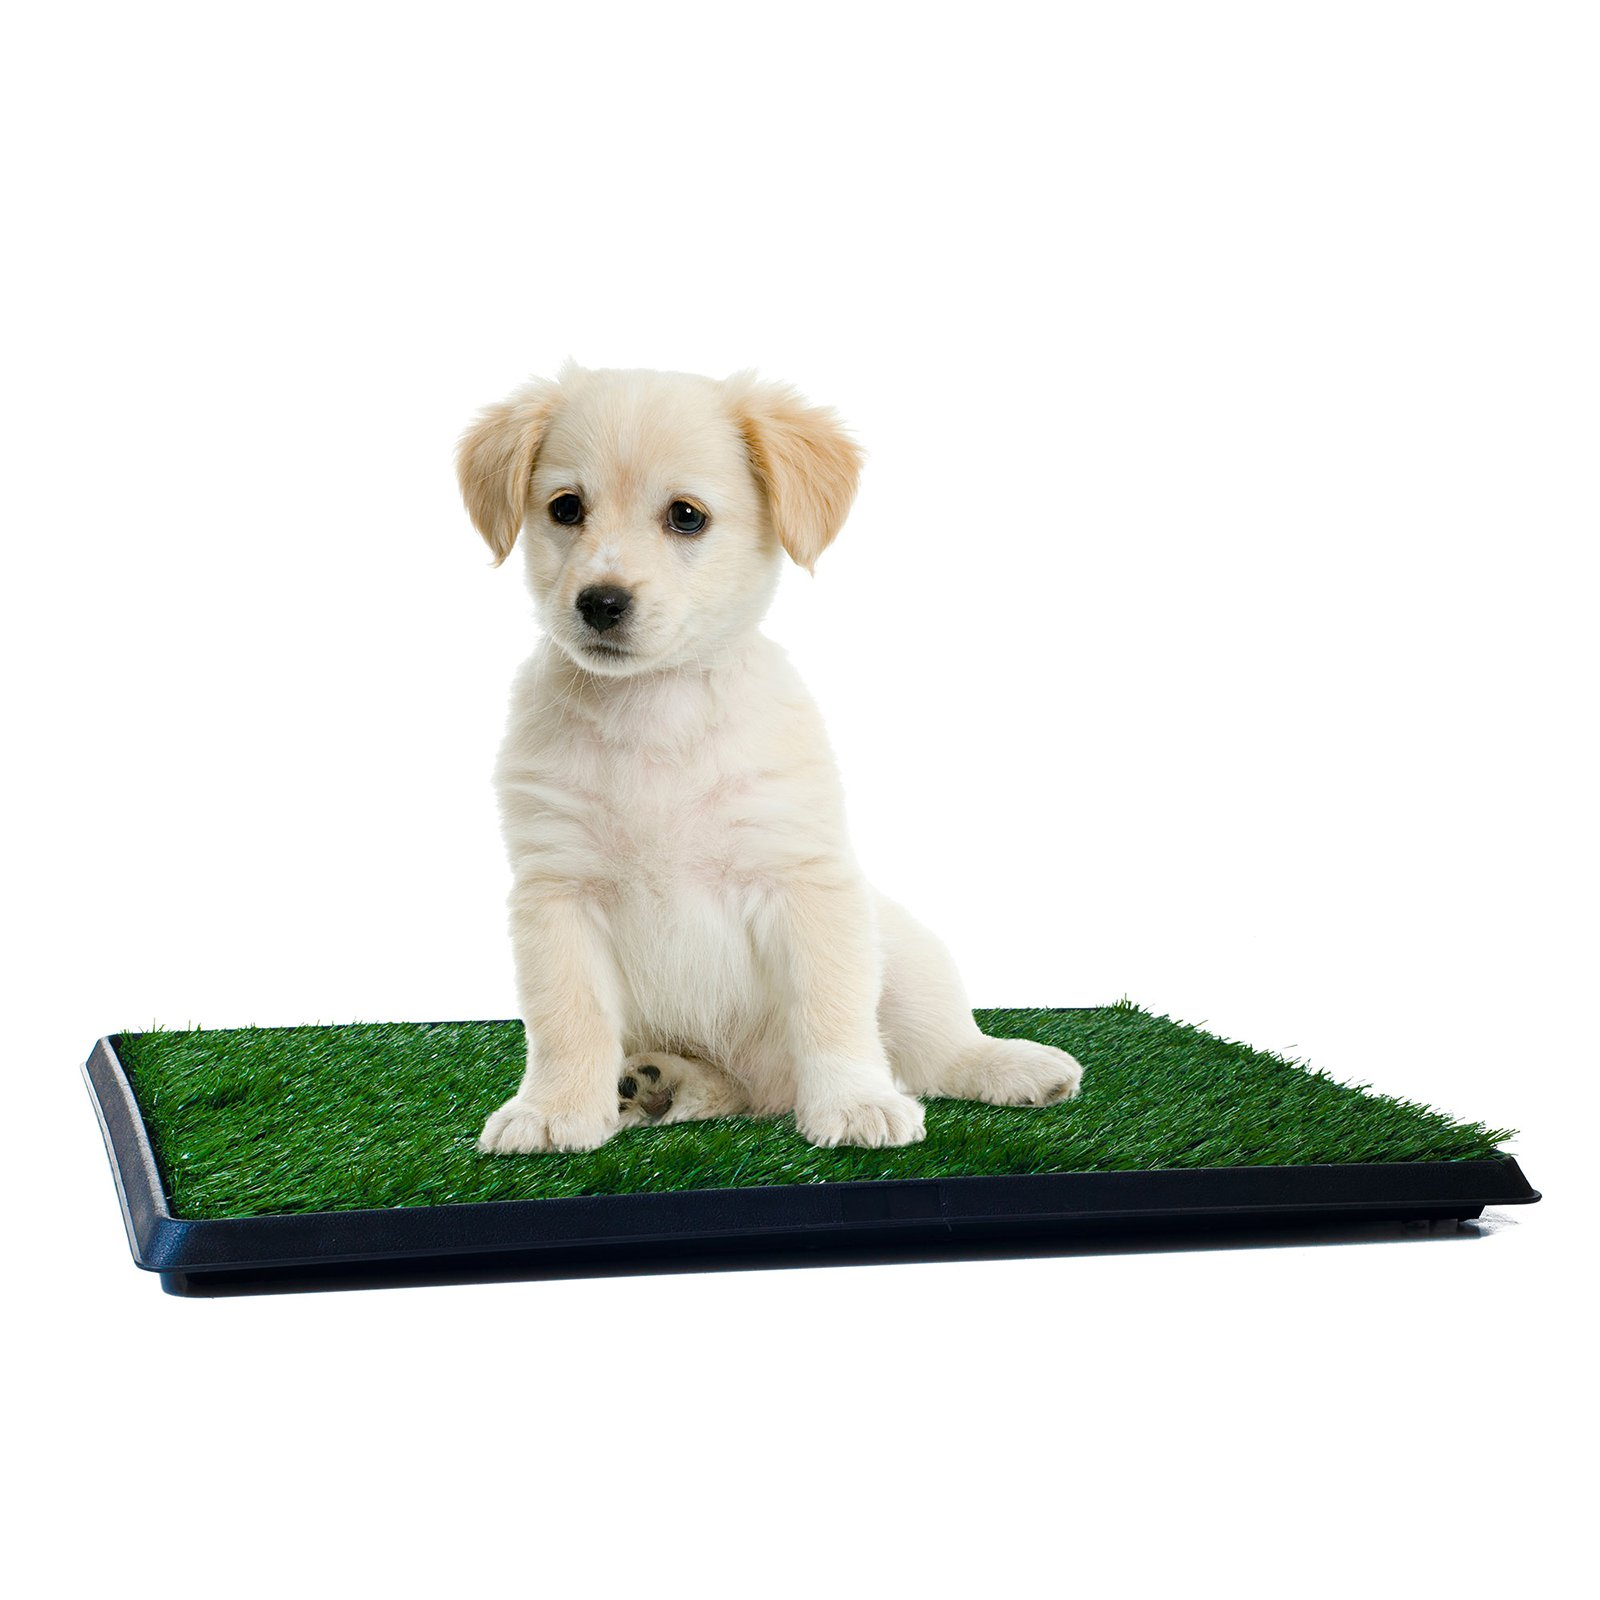 PETMAKER Puppy Potty Trainer - The Indoor Restroom for Pets 16 x 20 in